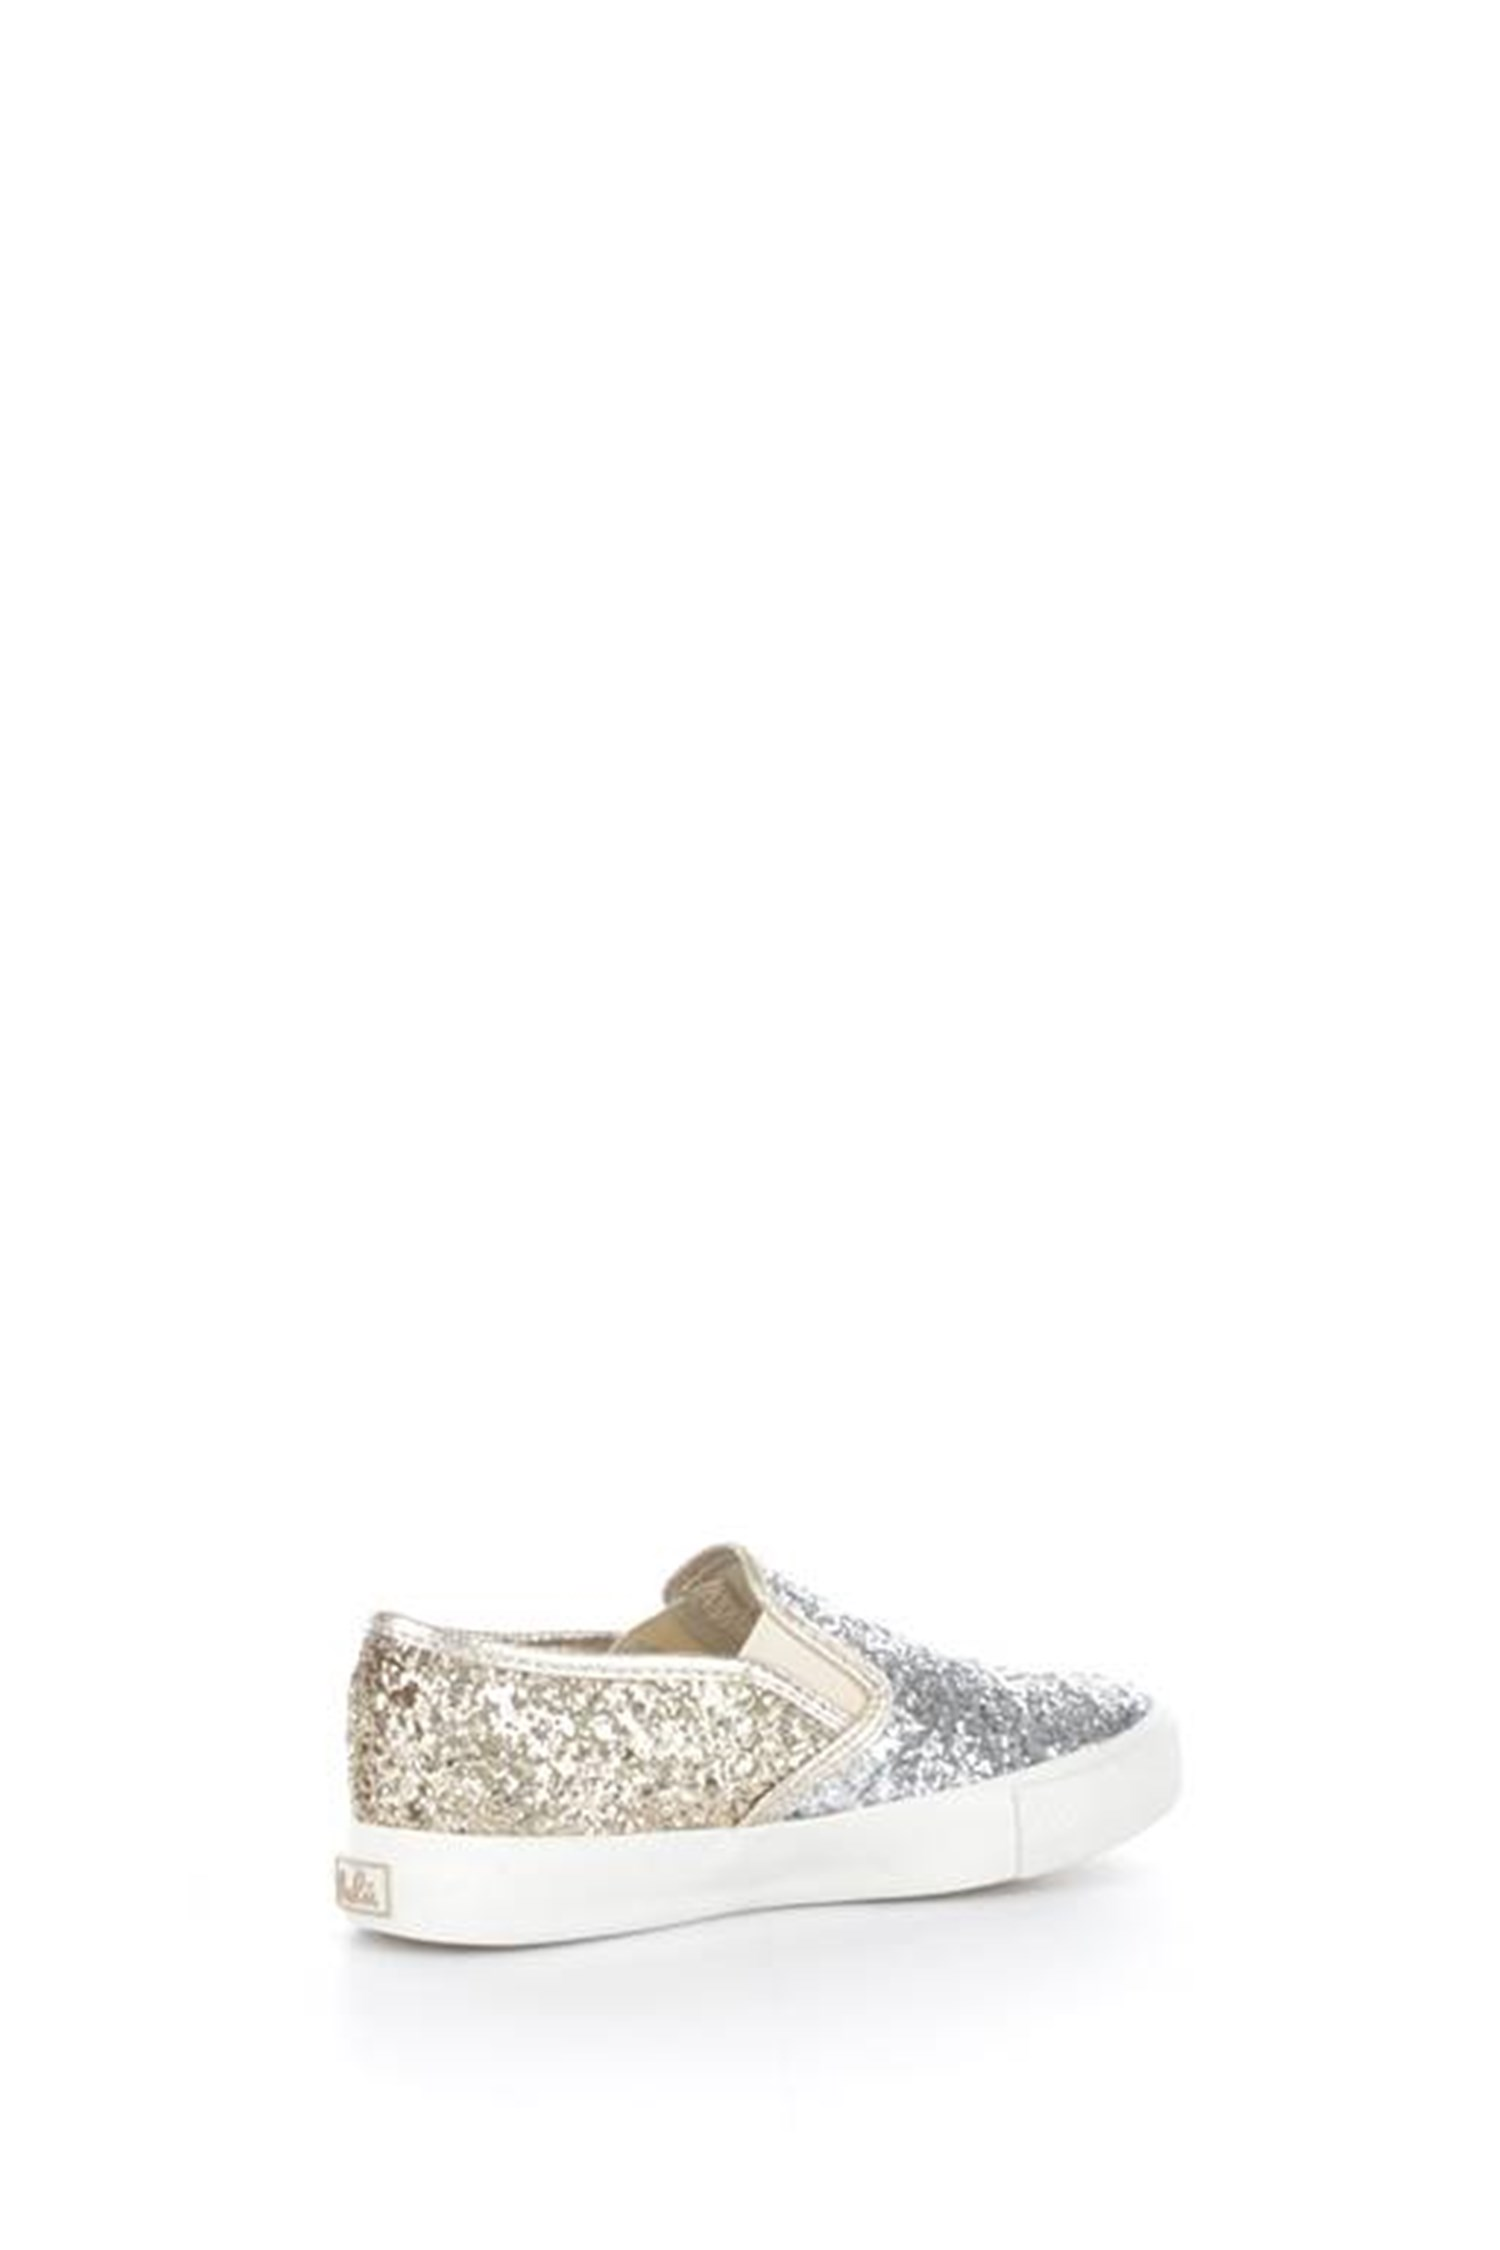 Lulu' Shoes Child low GREY GLITTER